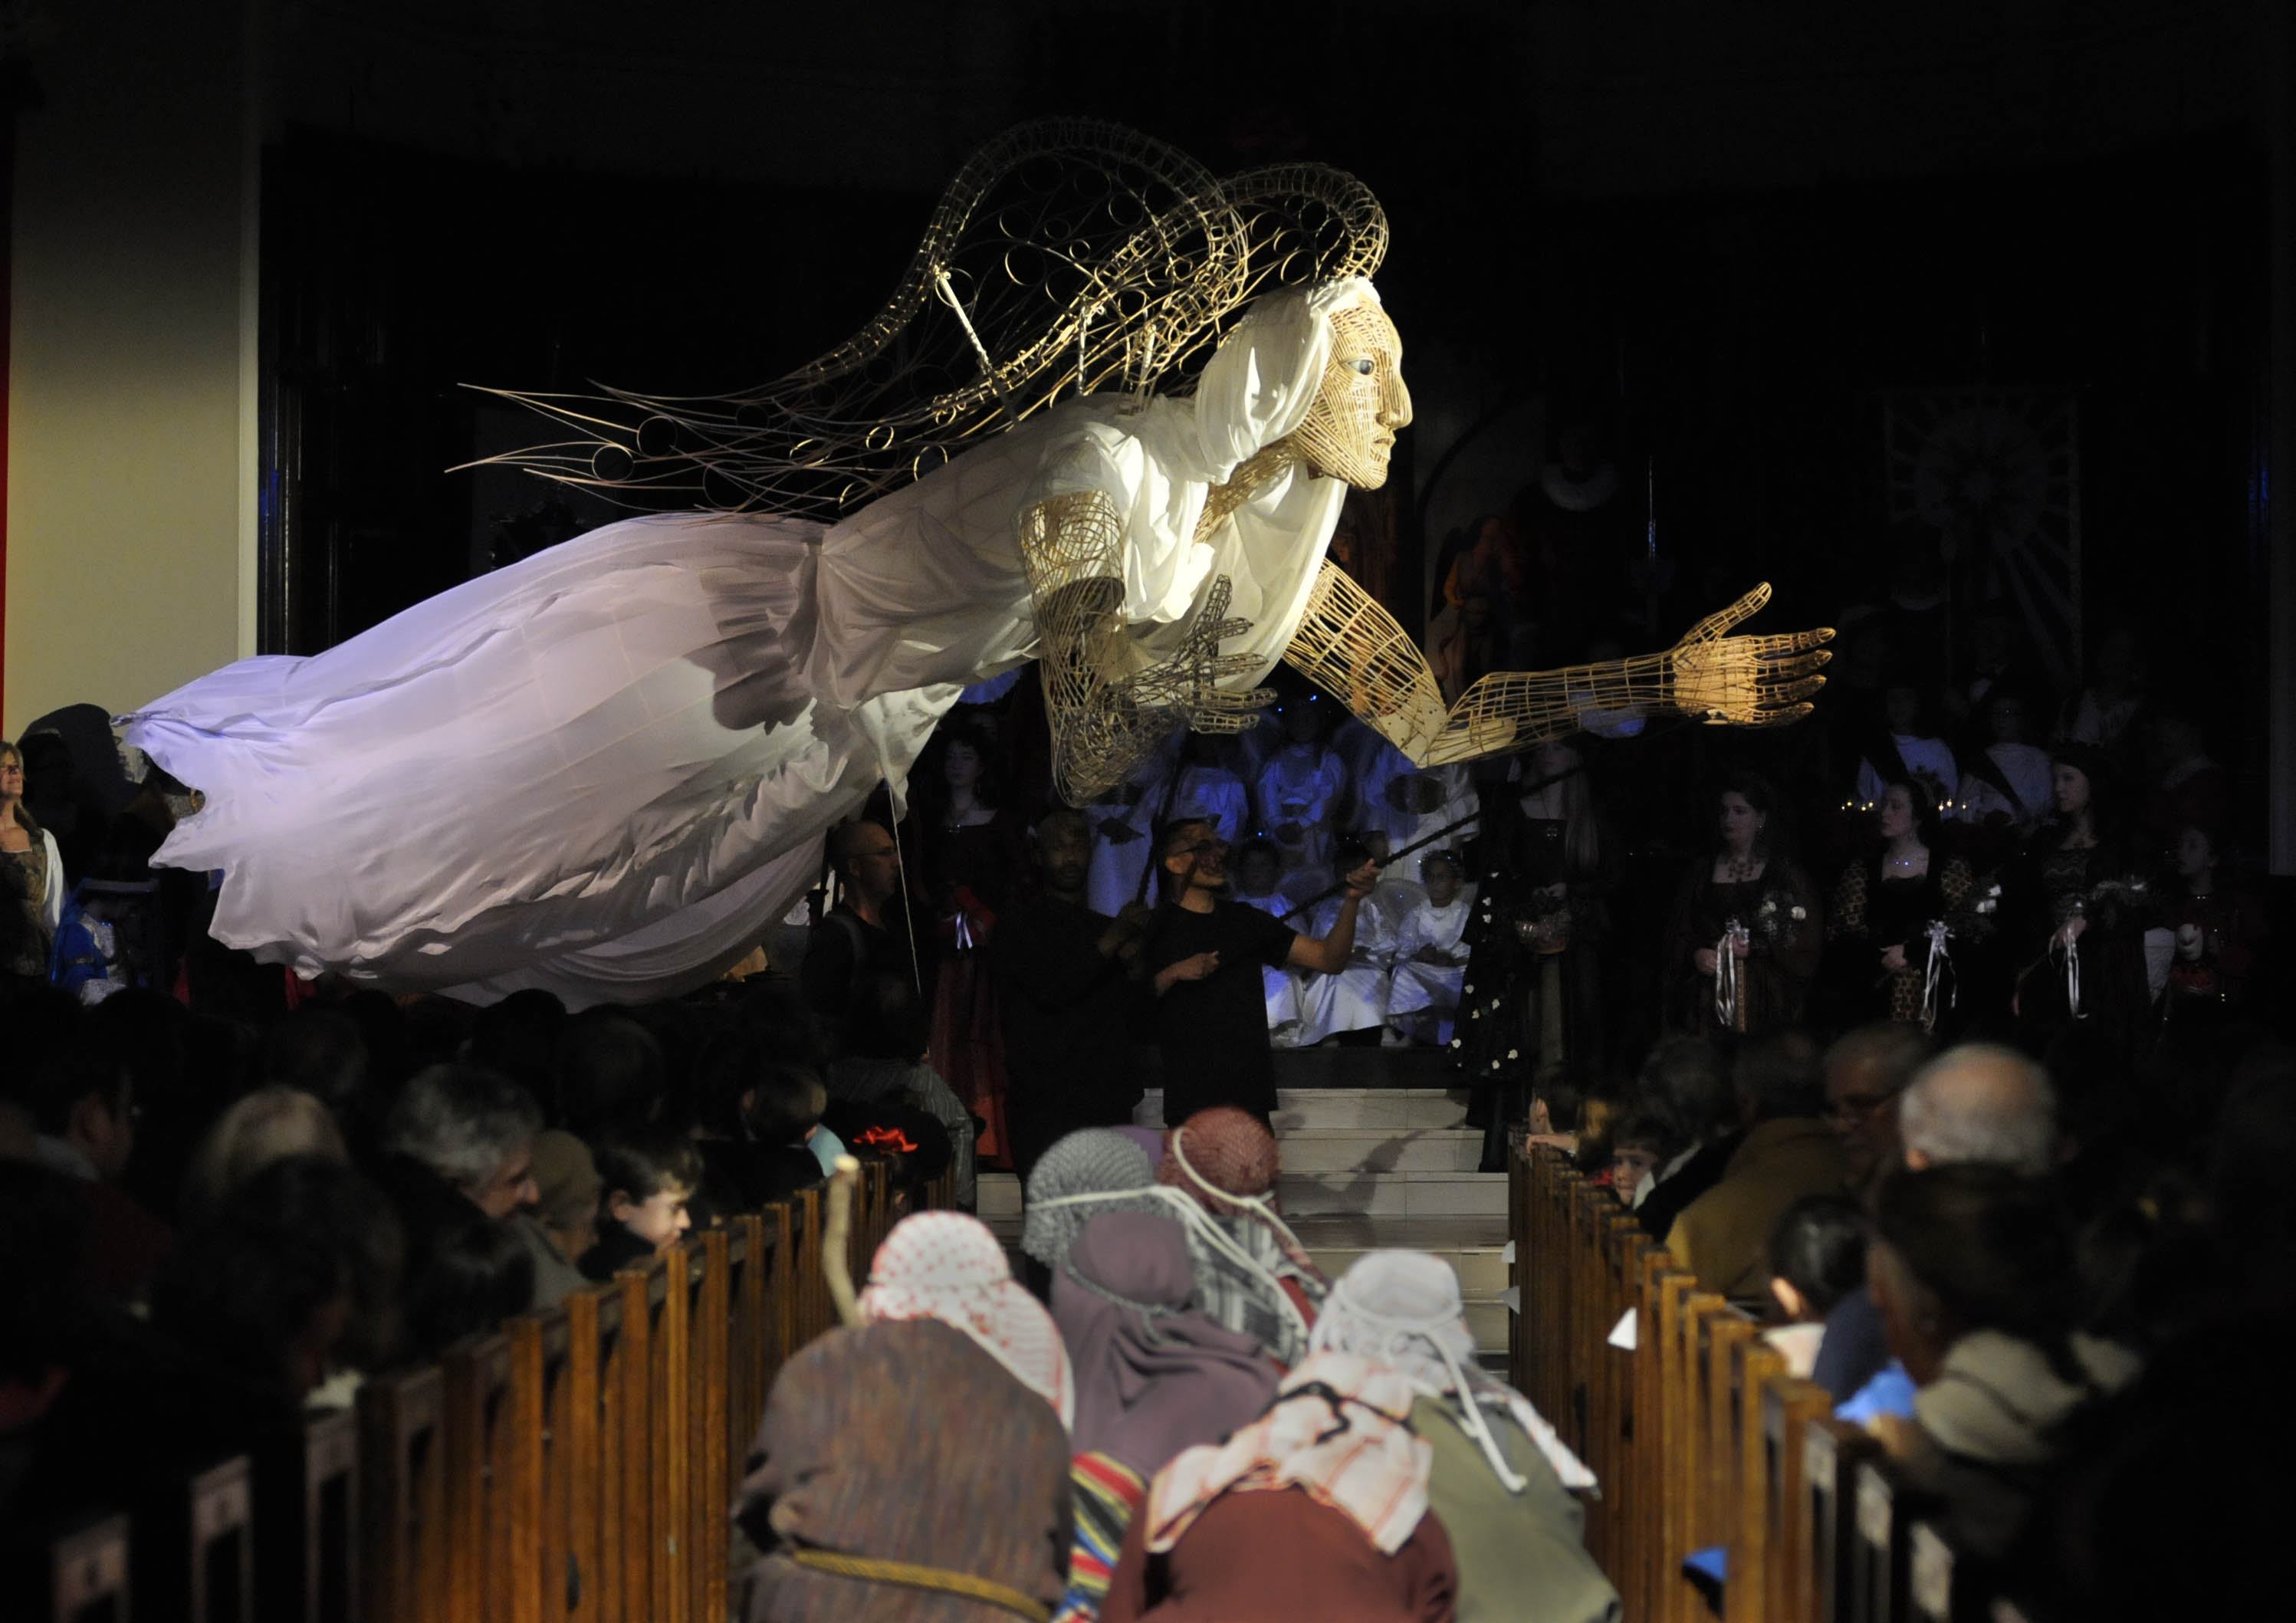 HARTFORD 01/11/15 A giant angel puppet created by artist Anne Cubberly, is raised up as the shepherds cower, during the 48th Annual Boar's Head and Yule Log Festival was held at the Asylum Hill Congregational Church Sunday. This is the fourth of five performances this weekend of the celebration of the Epiphany that includes a cast, choir and orchestra of more than 250 people.  CLOE POISSON|cpoisson@courant.com